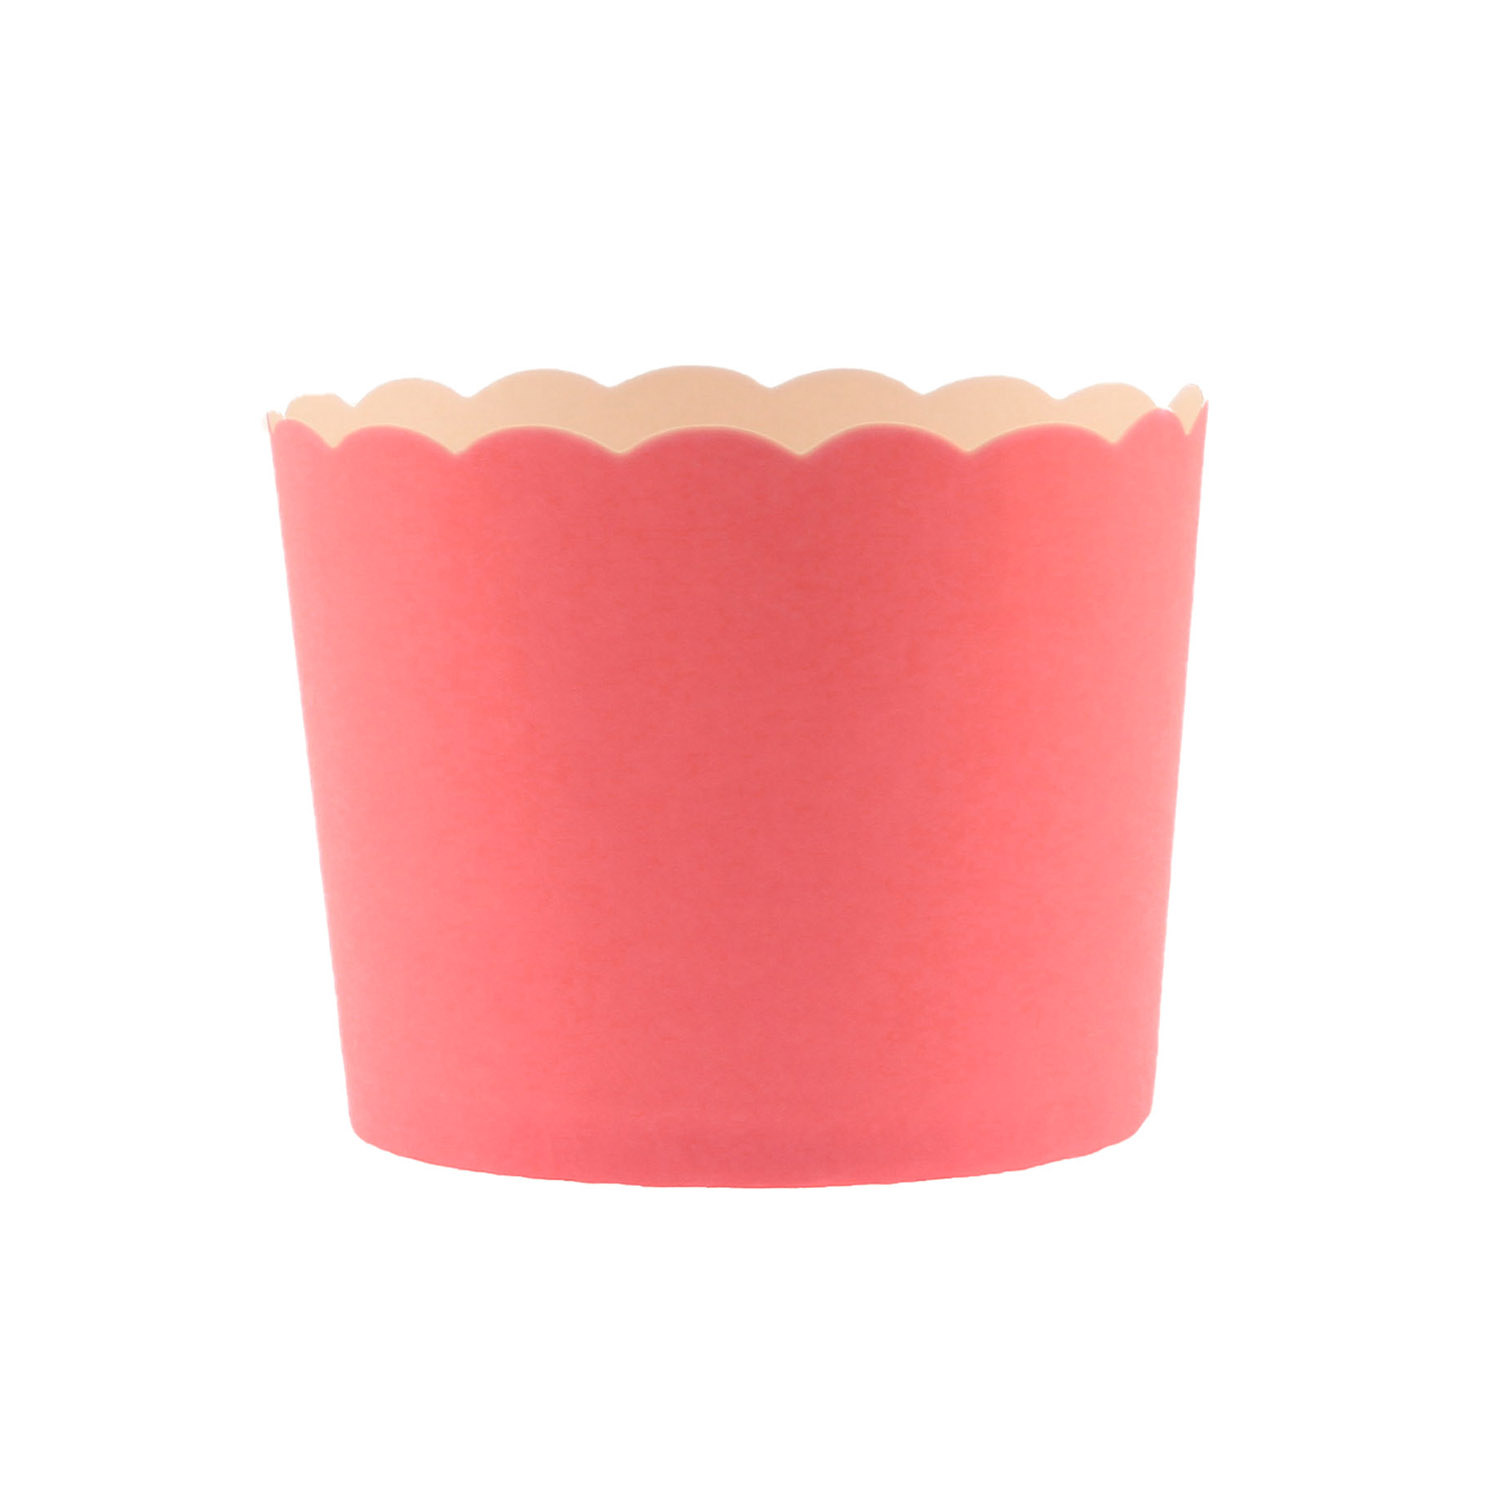 Pink Bake In Cups - Small